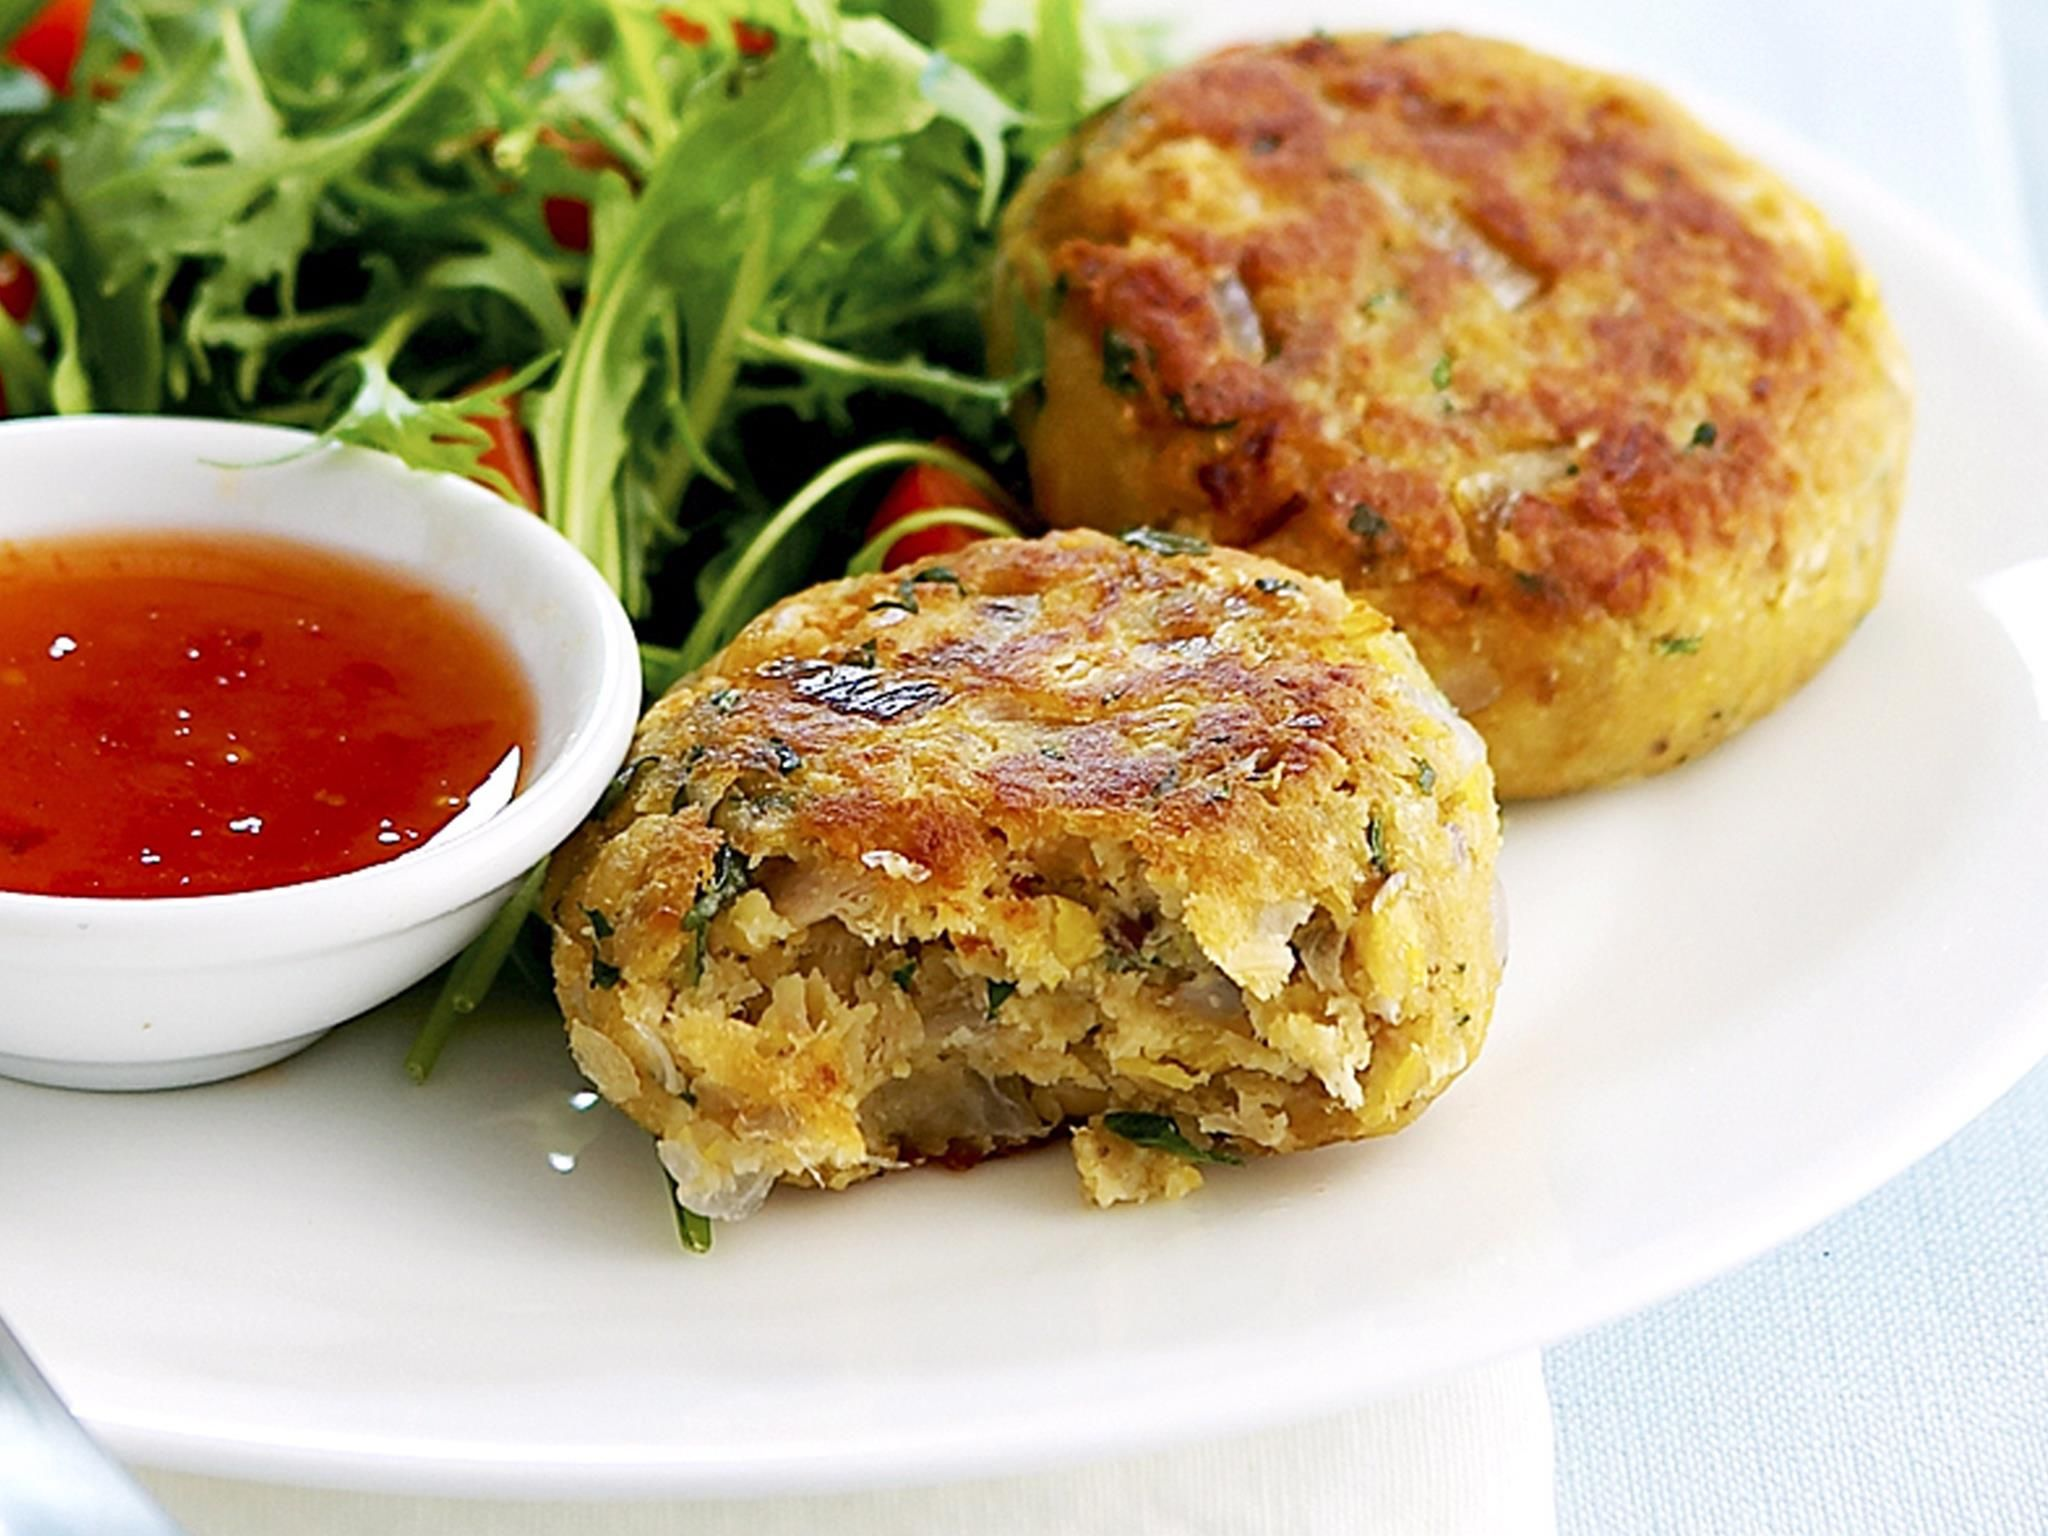 A Simple Recipe for Scrumptious Tuna and Chickpea Patties